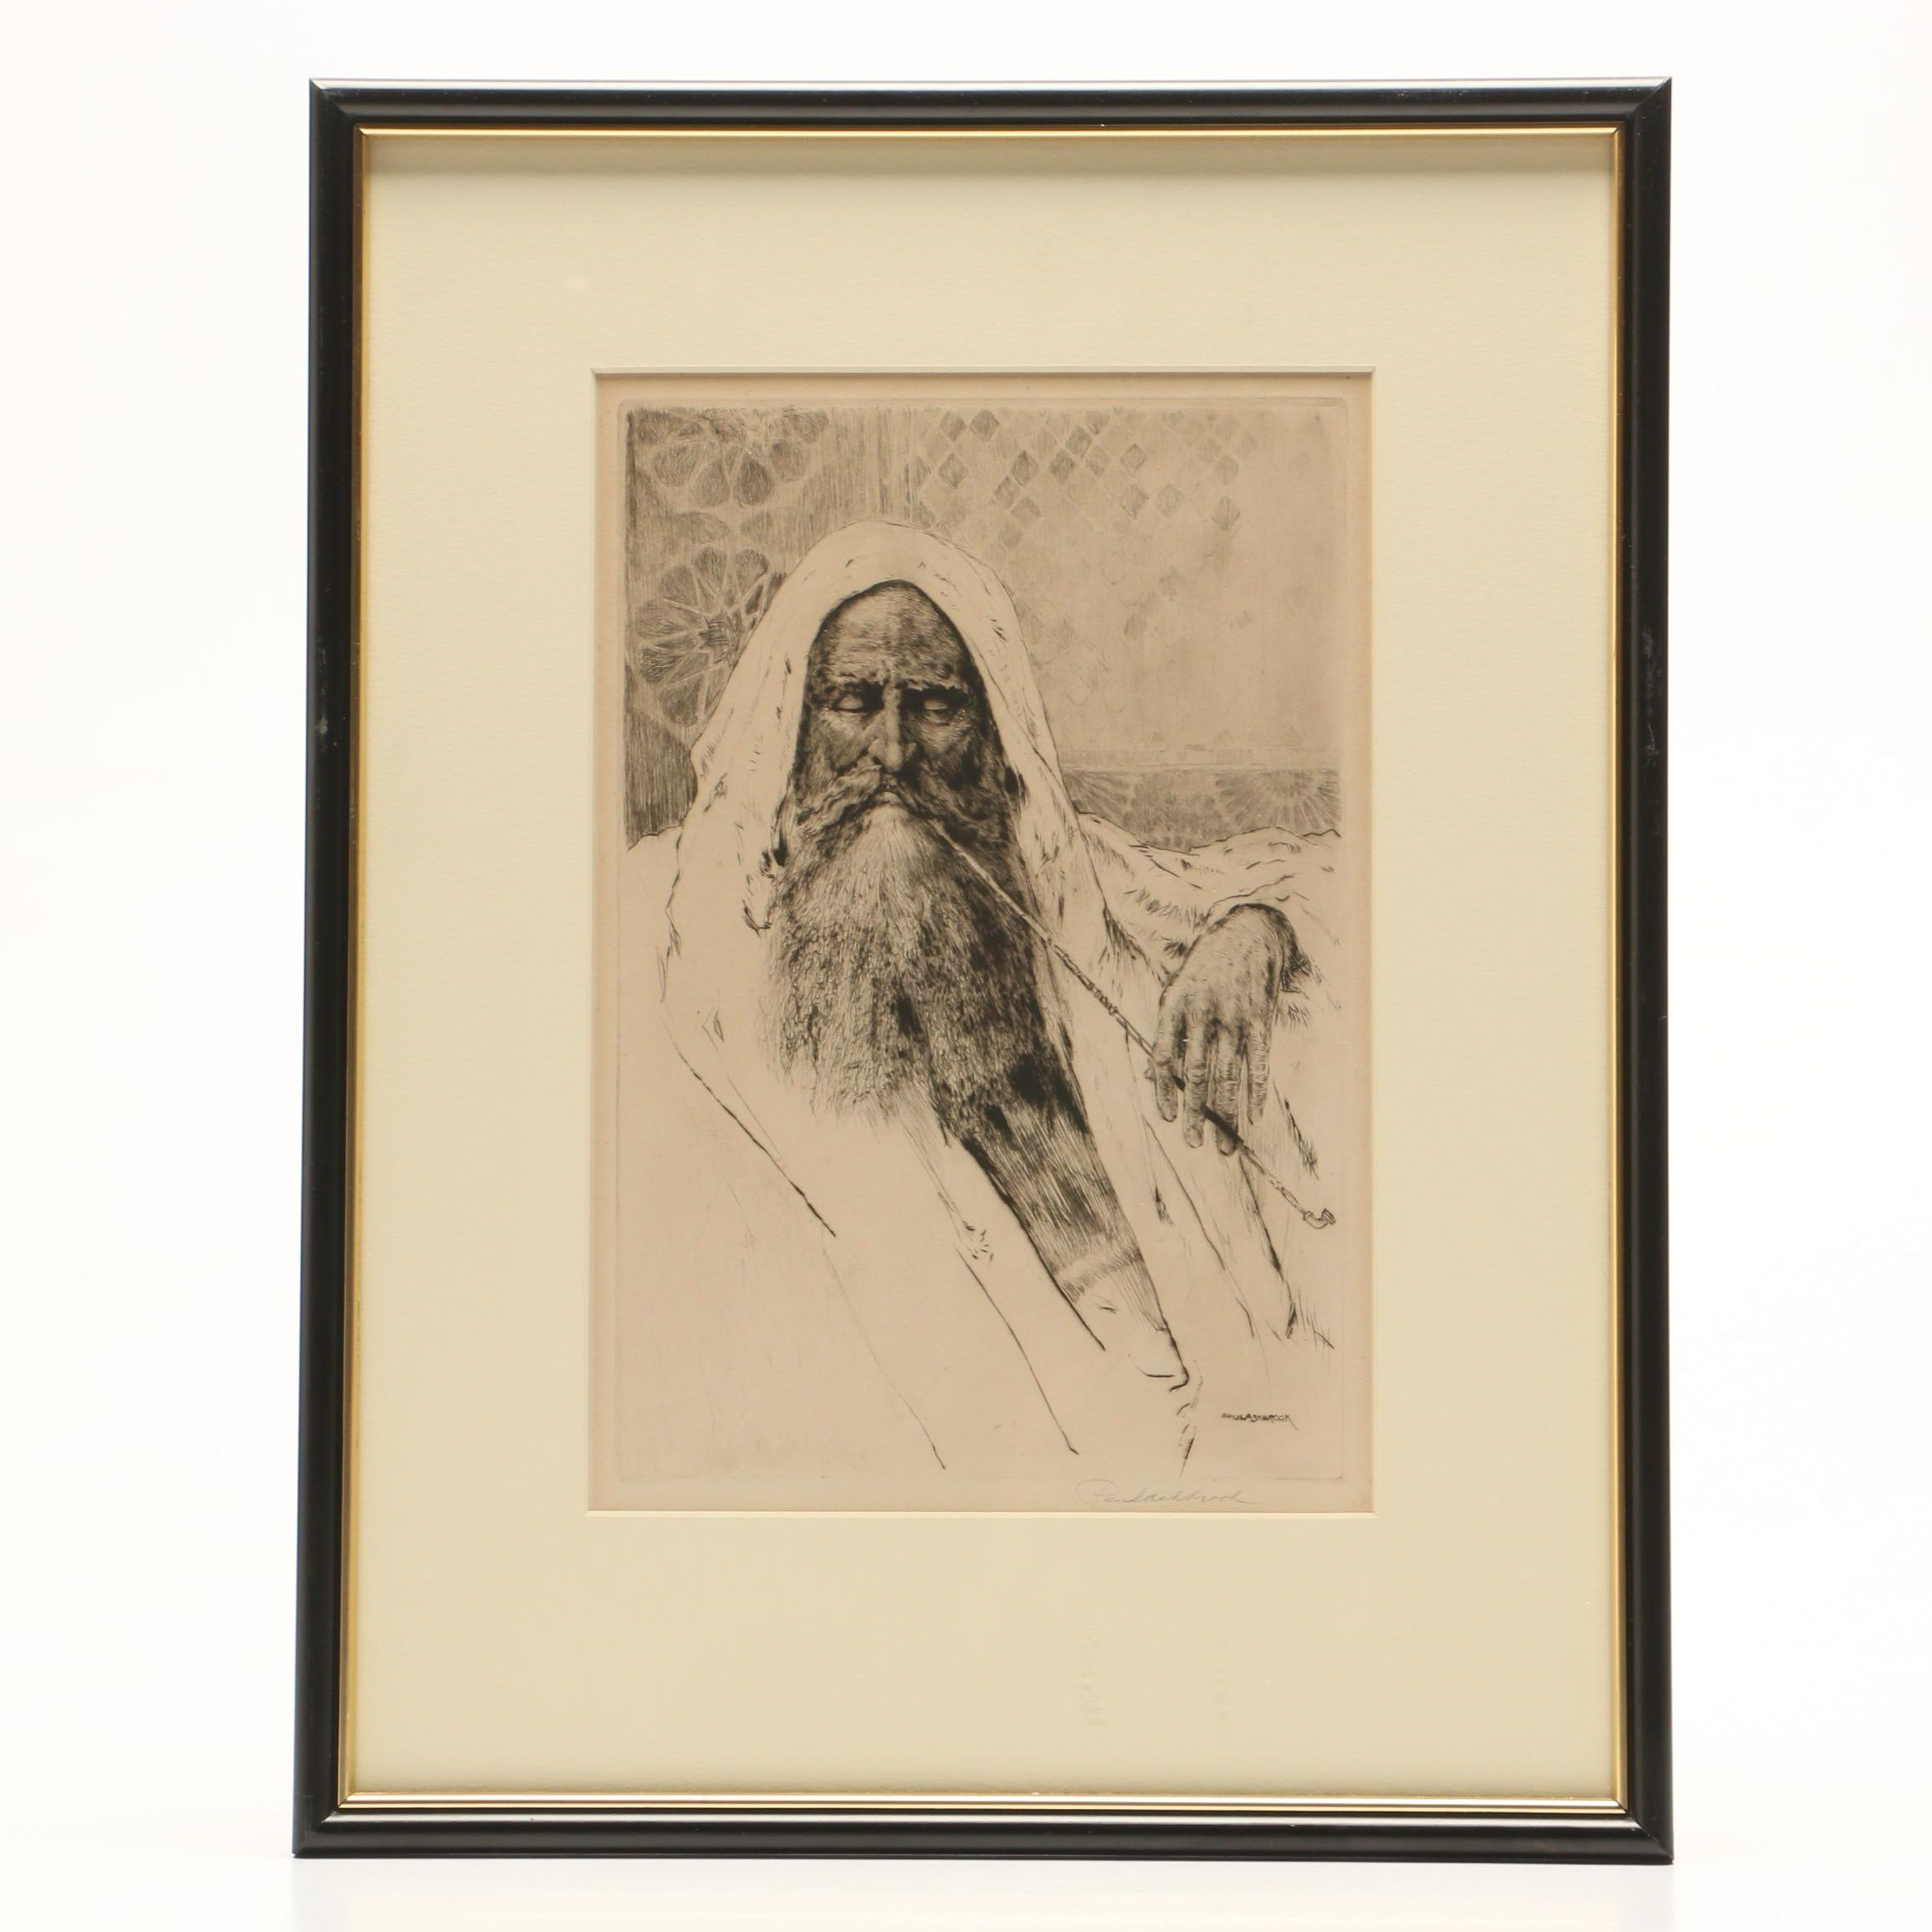 Paul Ashbrook Etching of Middle Eastern Man with Pipe